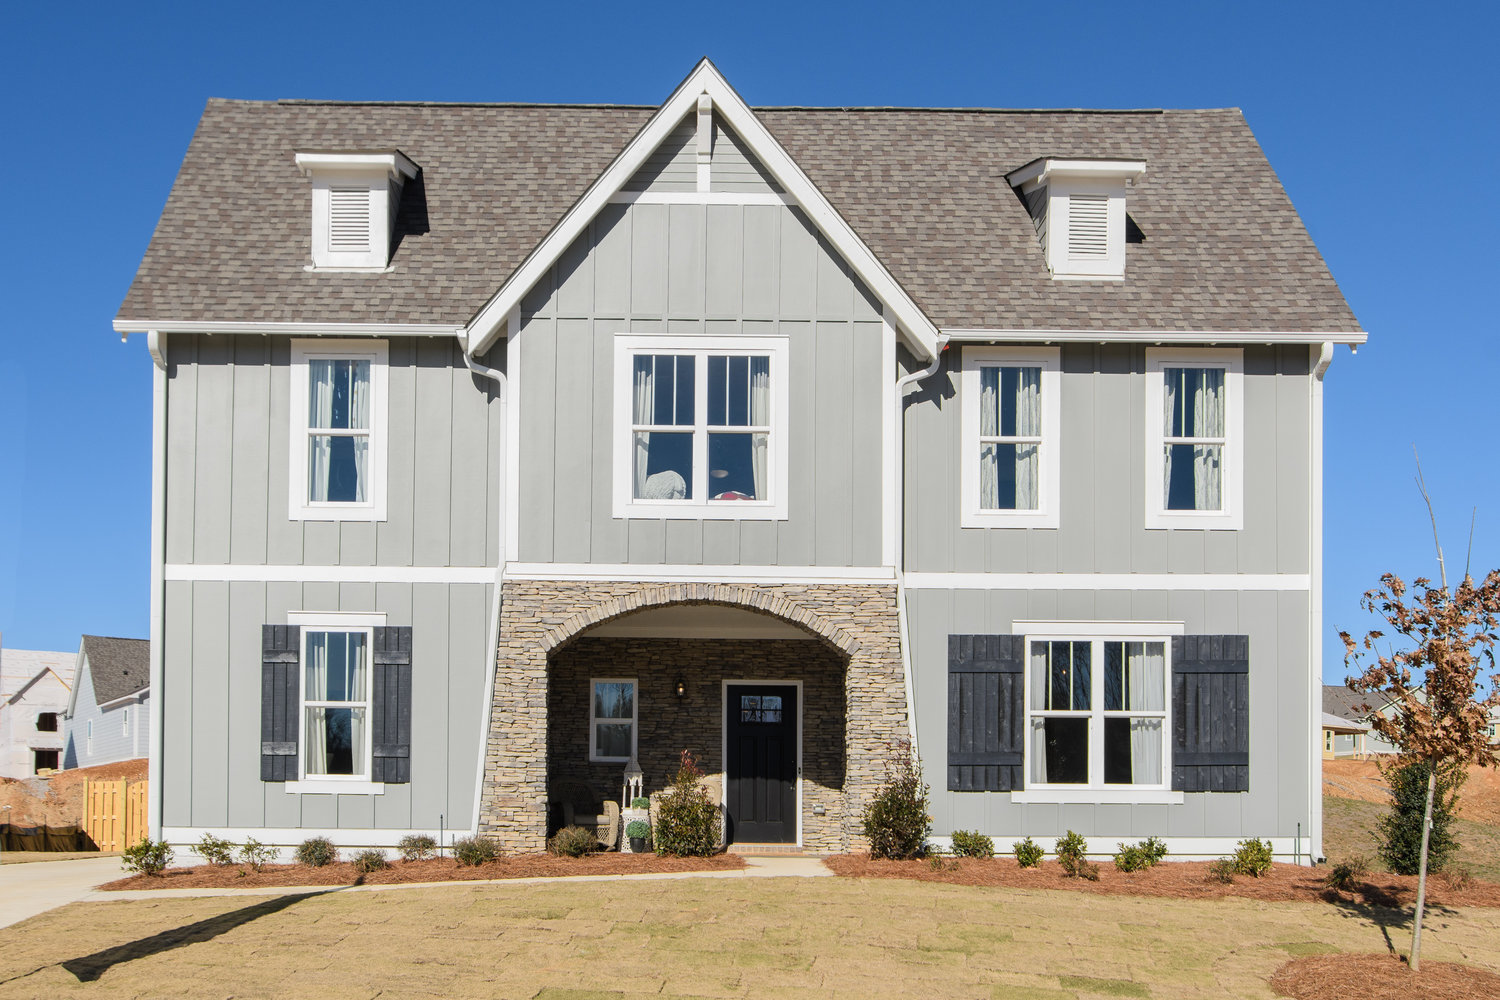 Virtual Tour of Birmingham Metro Real Estate Listing For Sale | 4831 Bo Run, Trussville, AL 35173